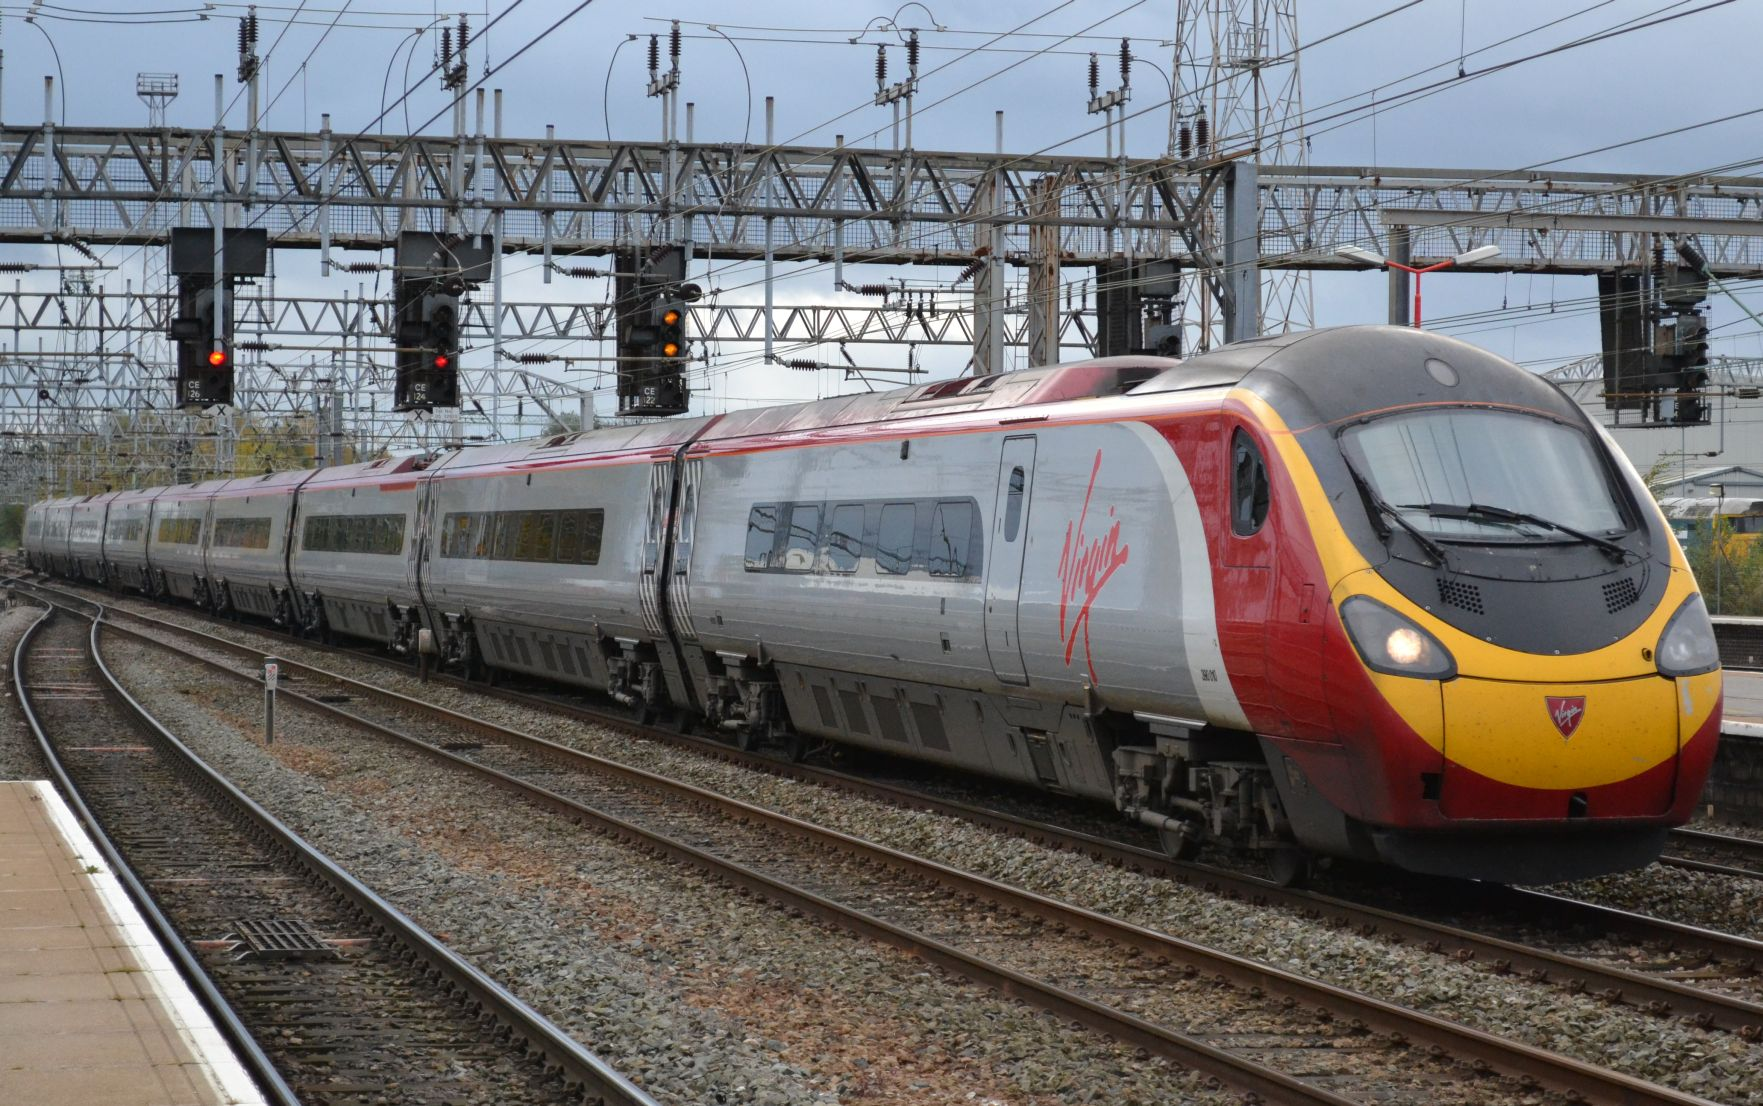 https://i0.wp.com/antidepaware.co.uk/wp-content/uploads/2014/01/Pendolino1.jpg